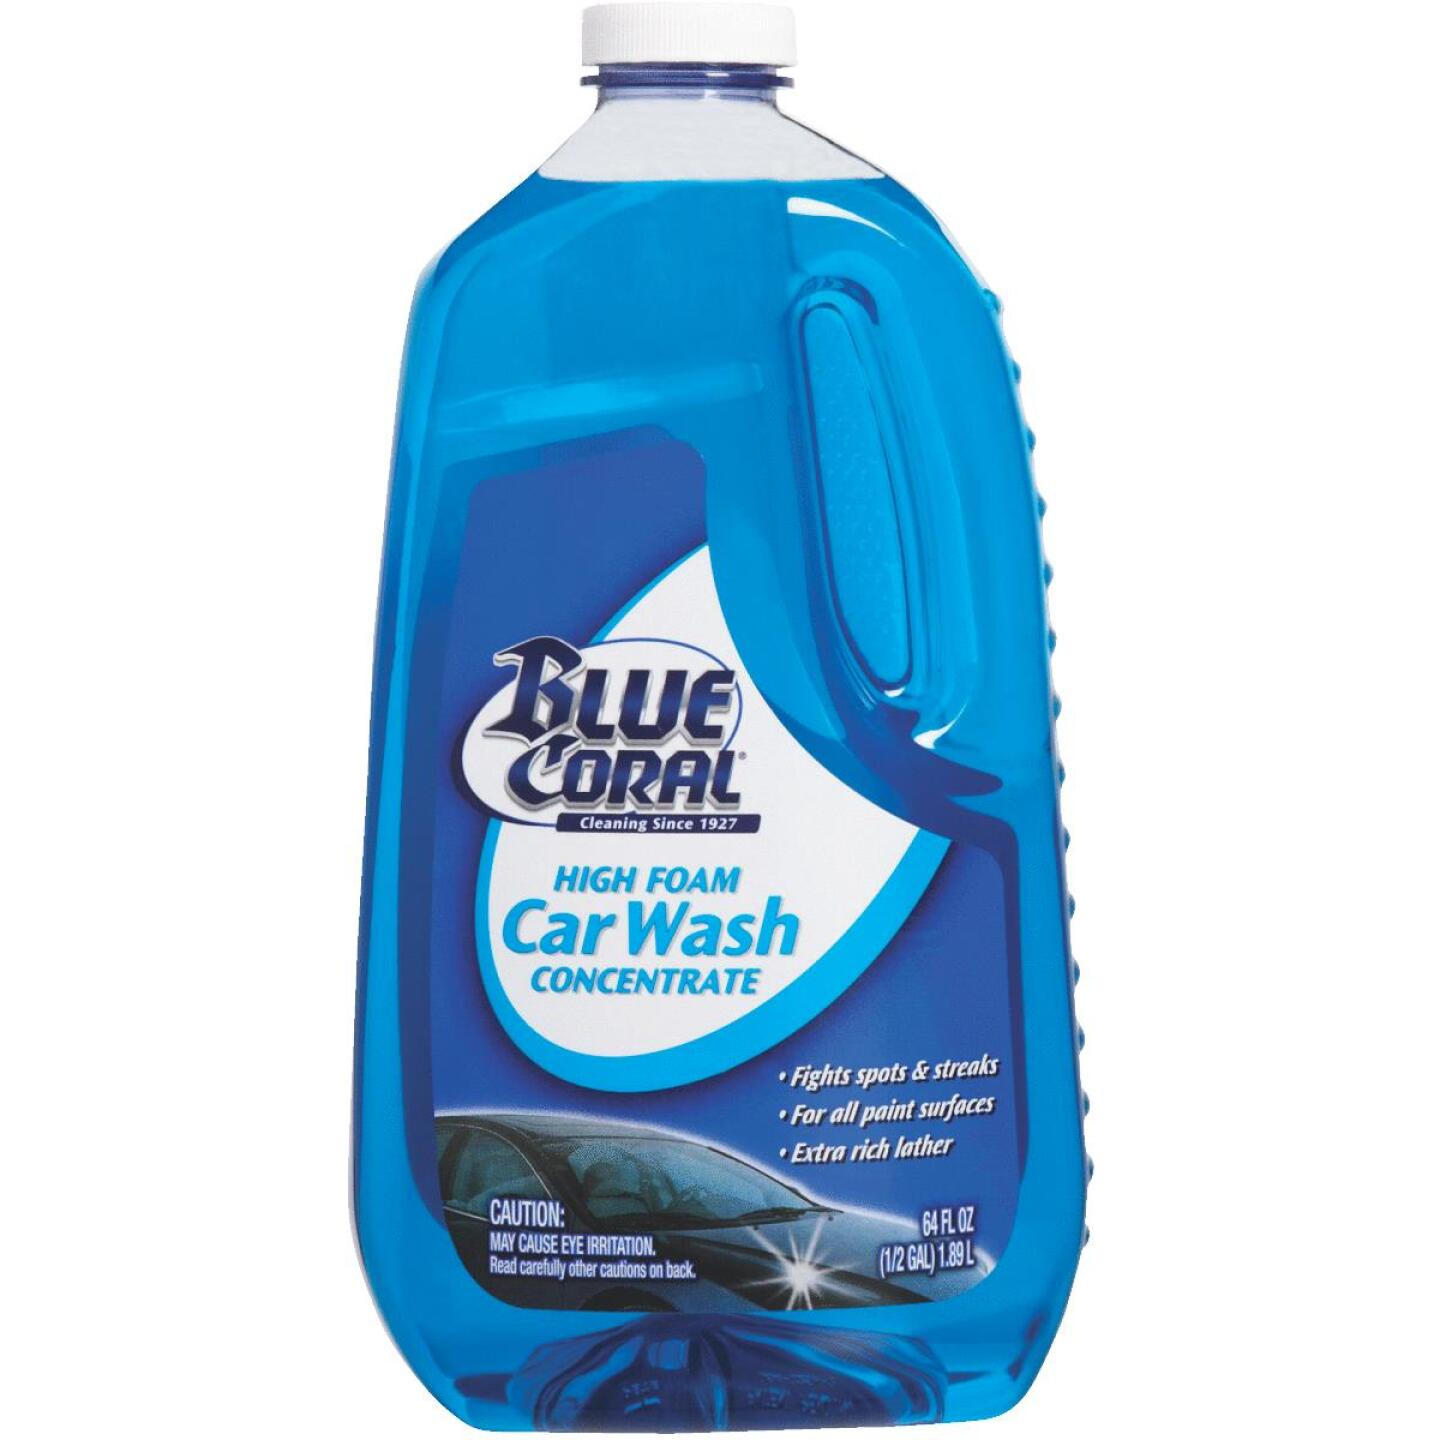 Blue Coral Liquid 64 oz Car Wash Image 1